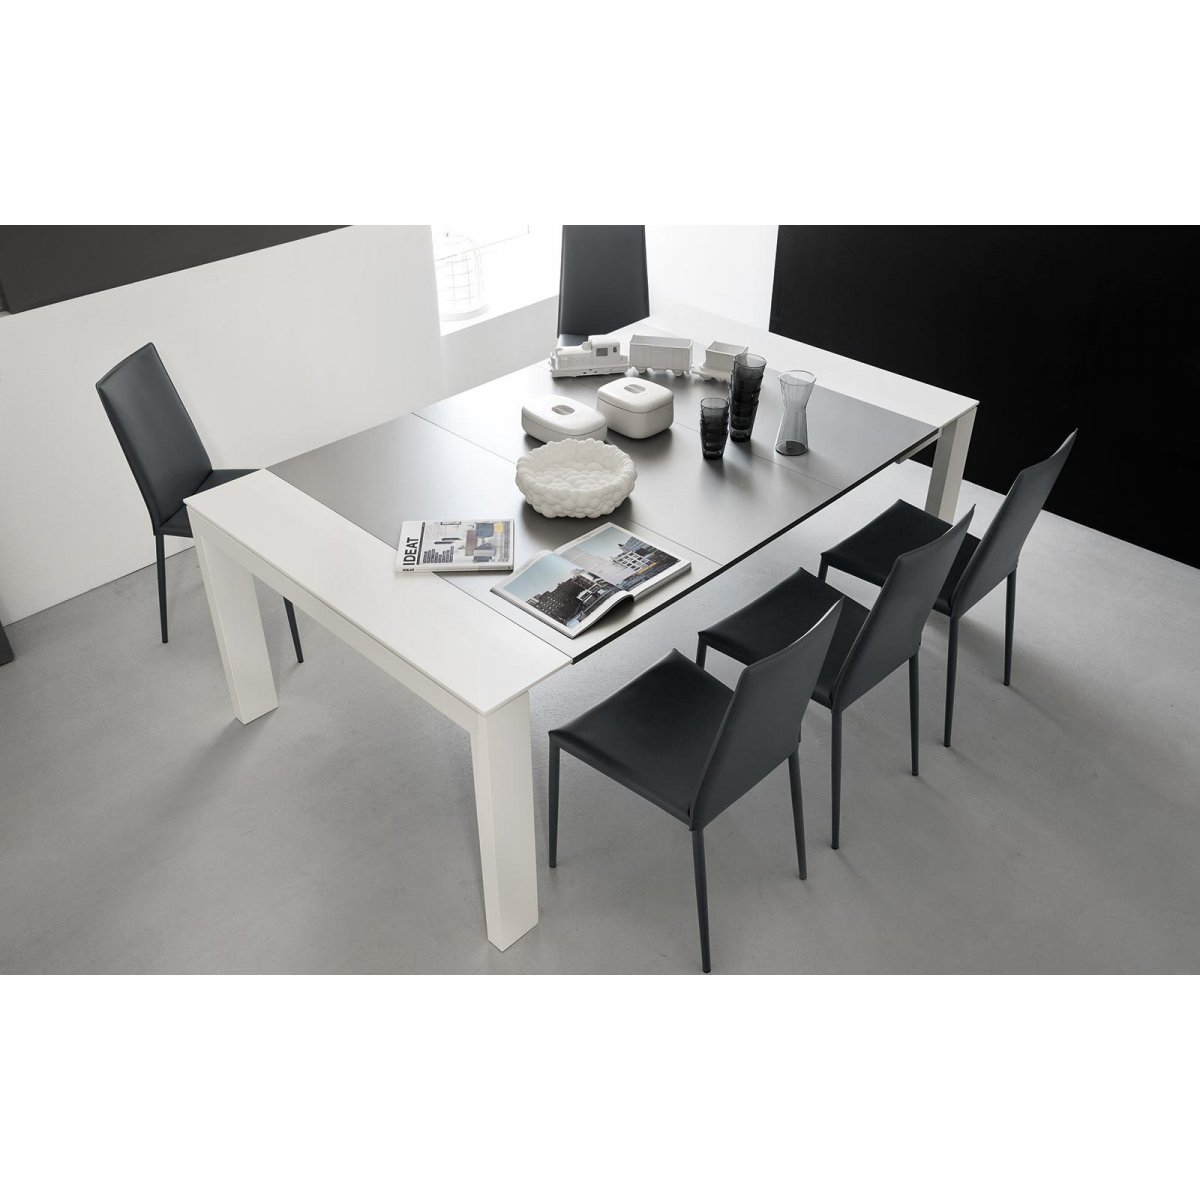 Connubia by Calligaris CONSOLLE SIGMA